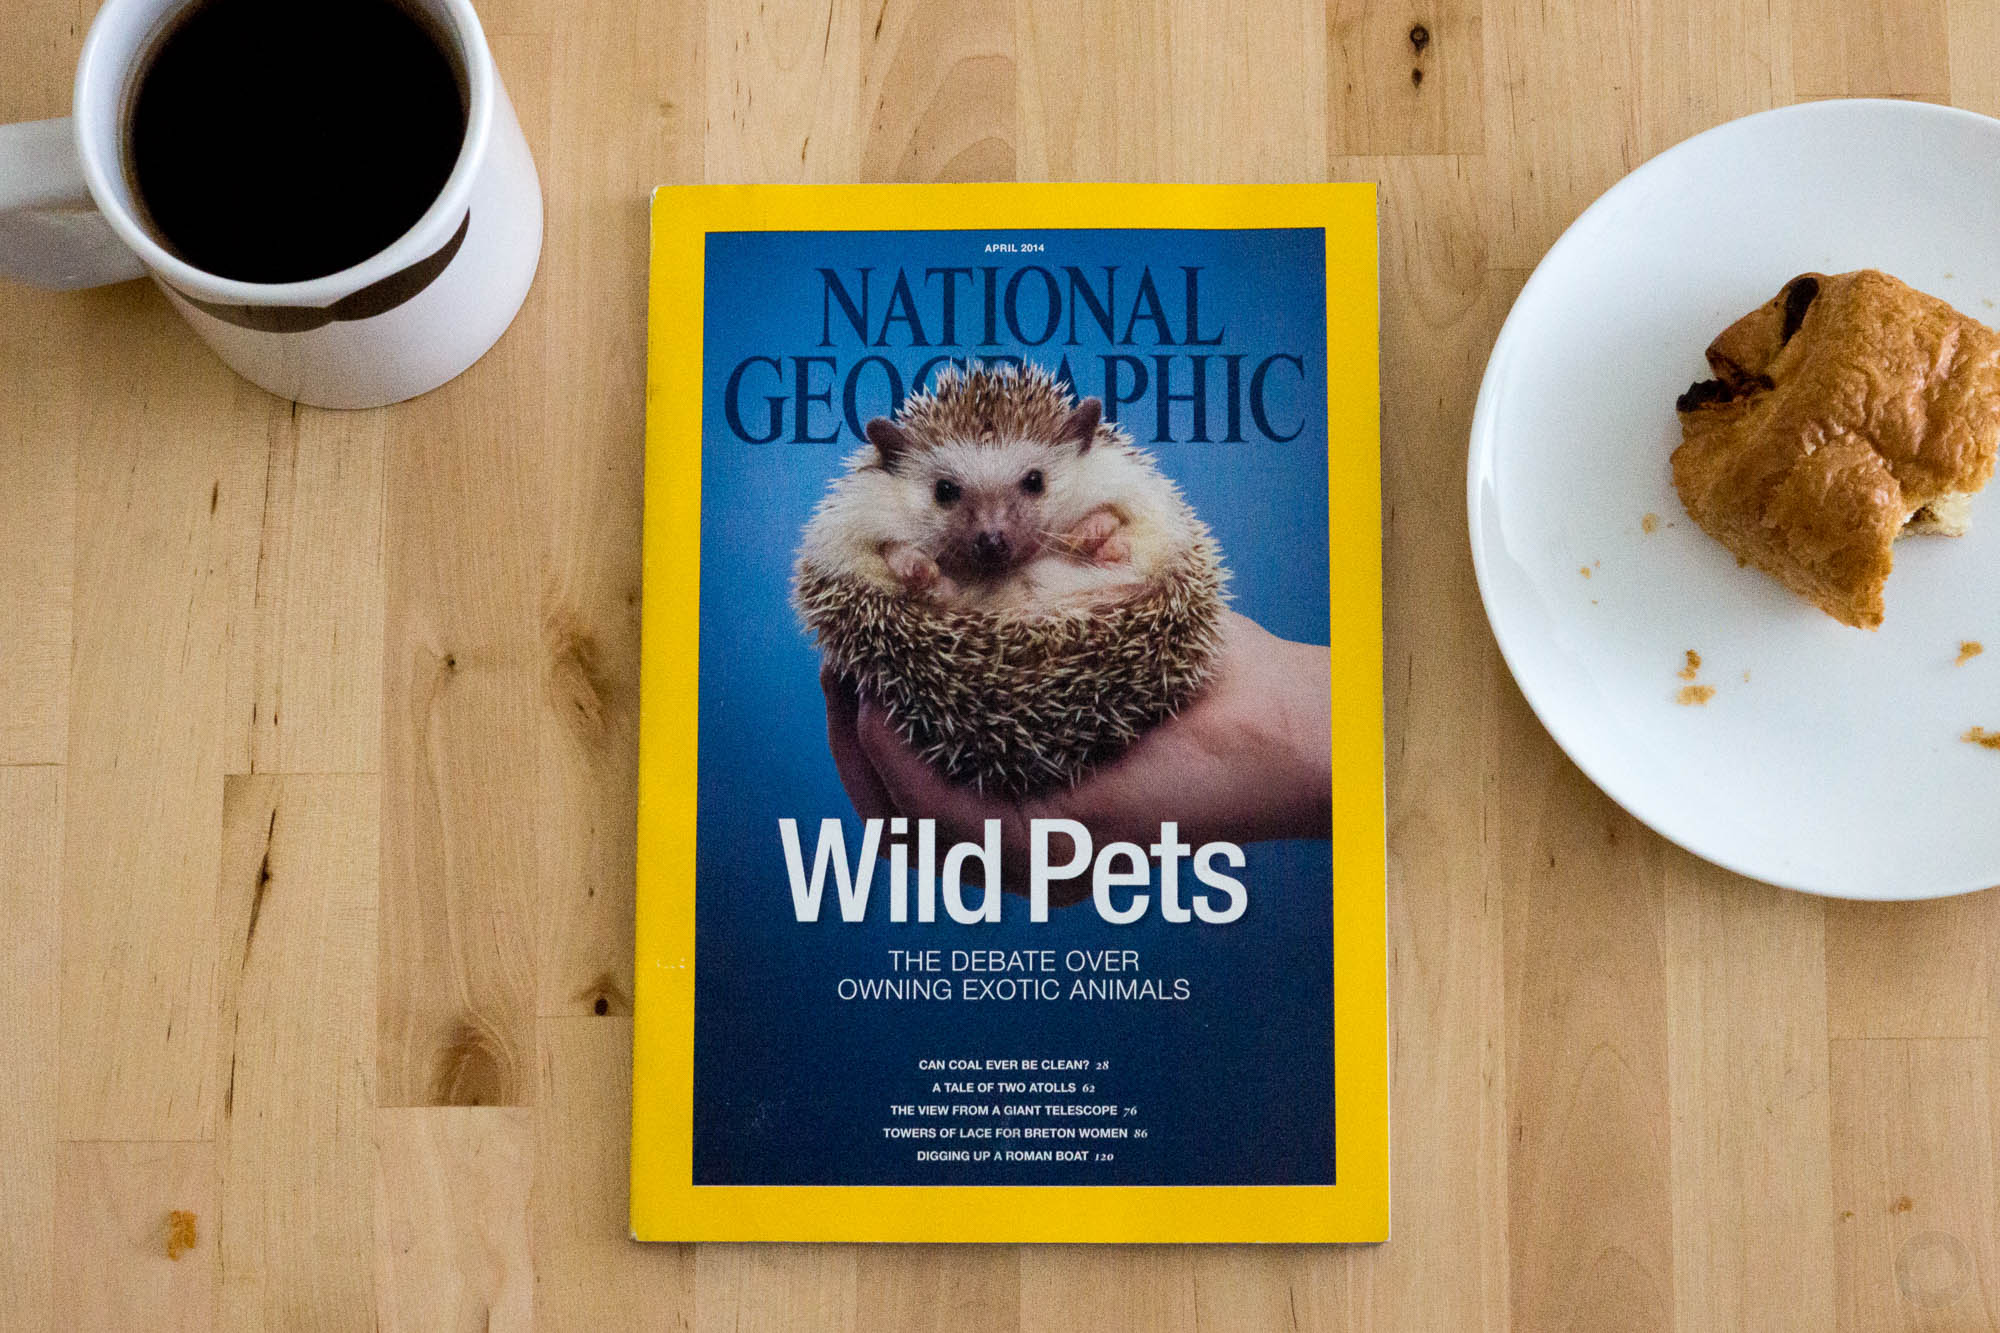 National Geographic magazine on a breakfast table